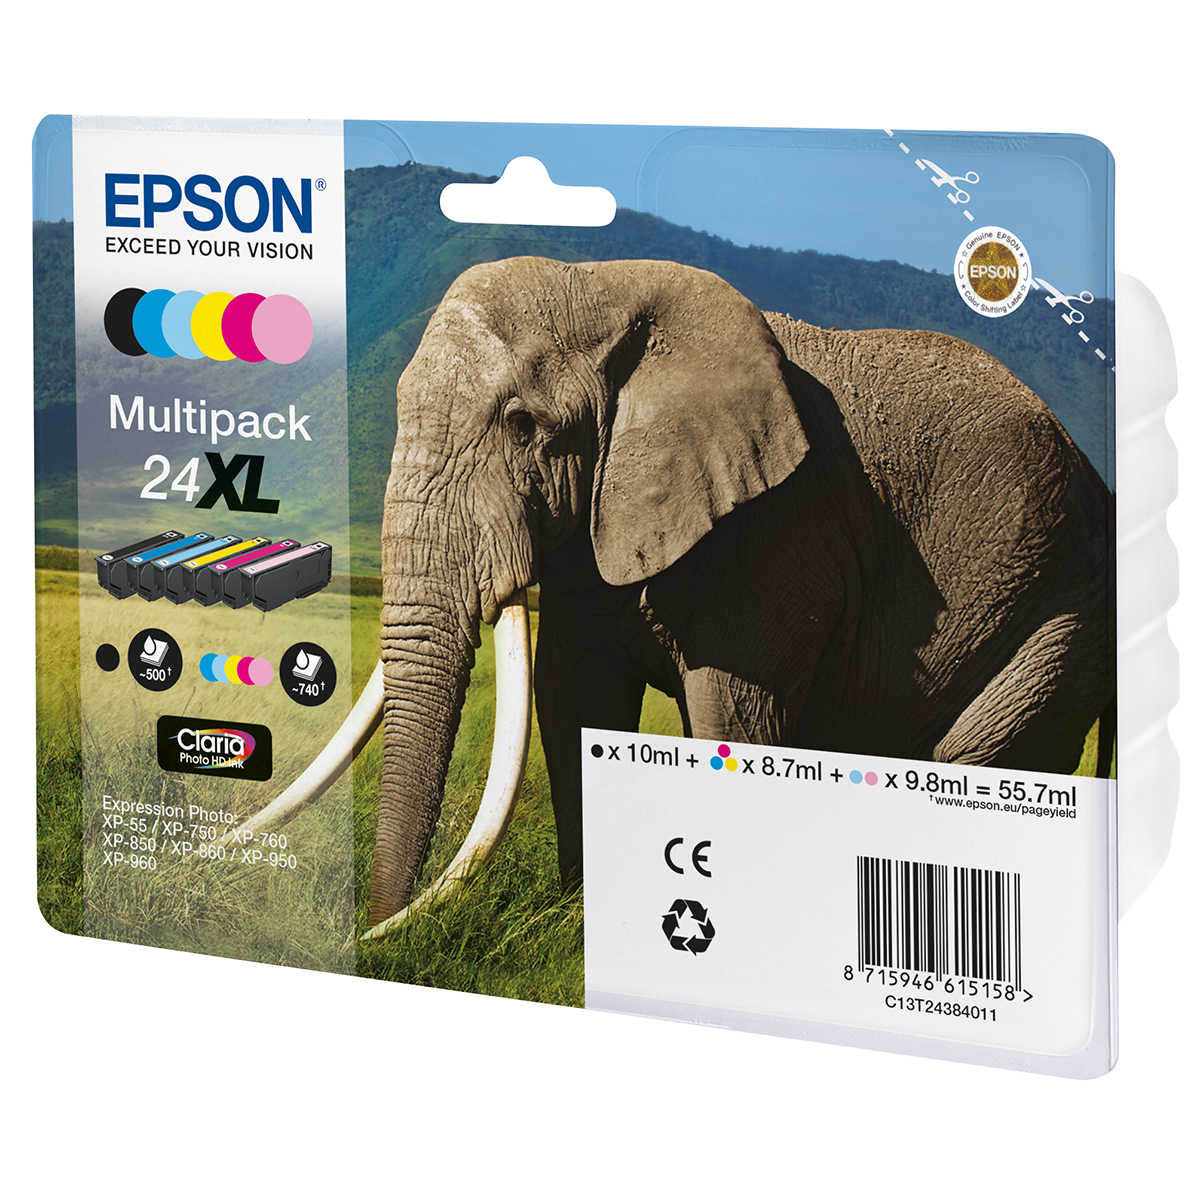 Epson 24XL Multipack 6 Ink Photo HD Cartridges